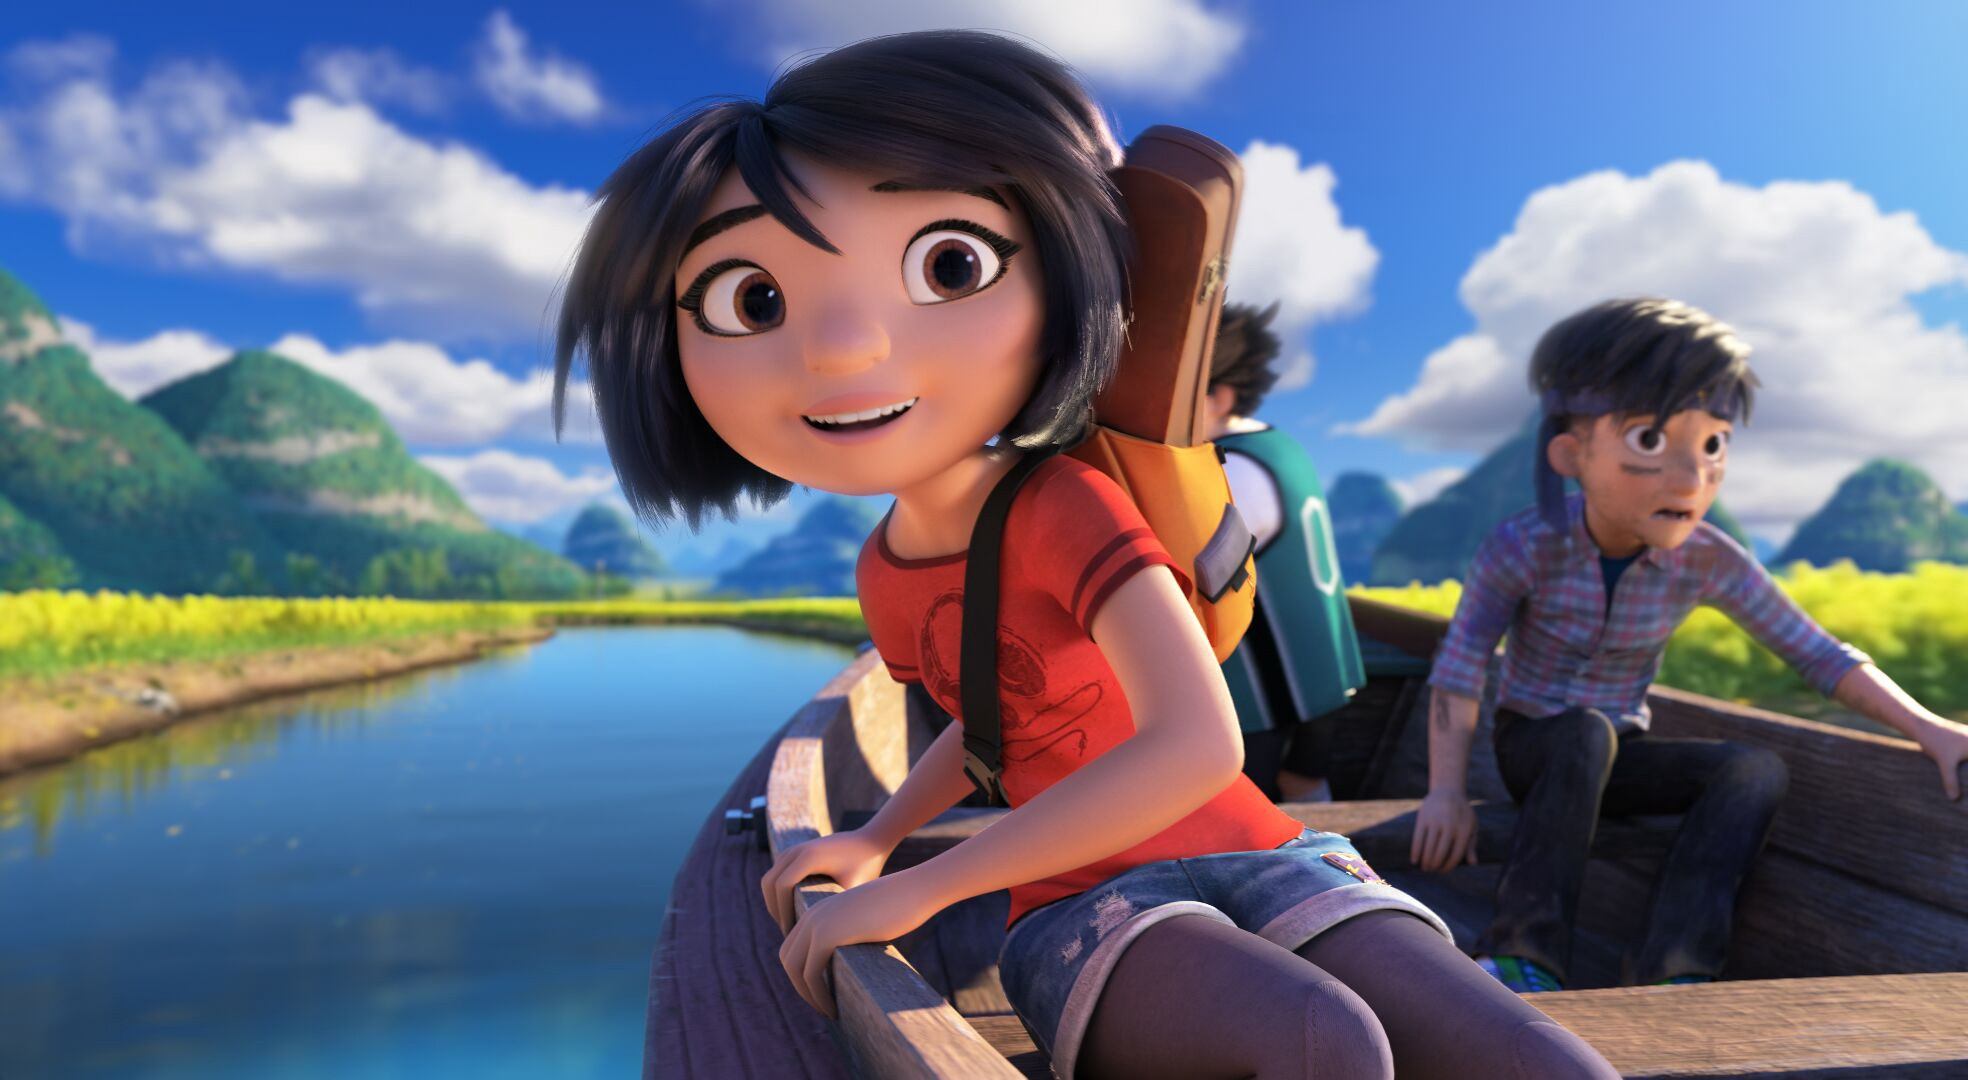 Yi, Peng, and Jin sail down a river in Tibet. Behind, them, a blue sky and fluffy clouds over mountains can be seen. Yi has an excited smile on her face and Jin looks frightened.